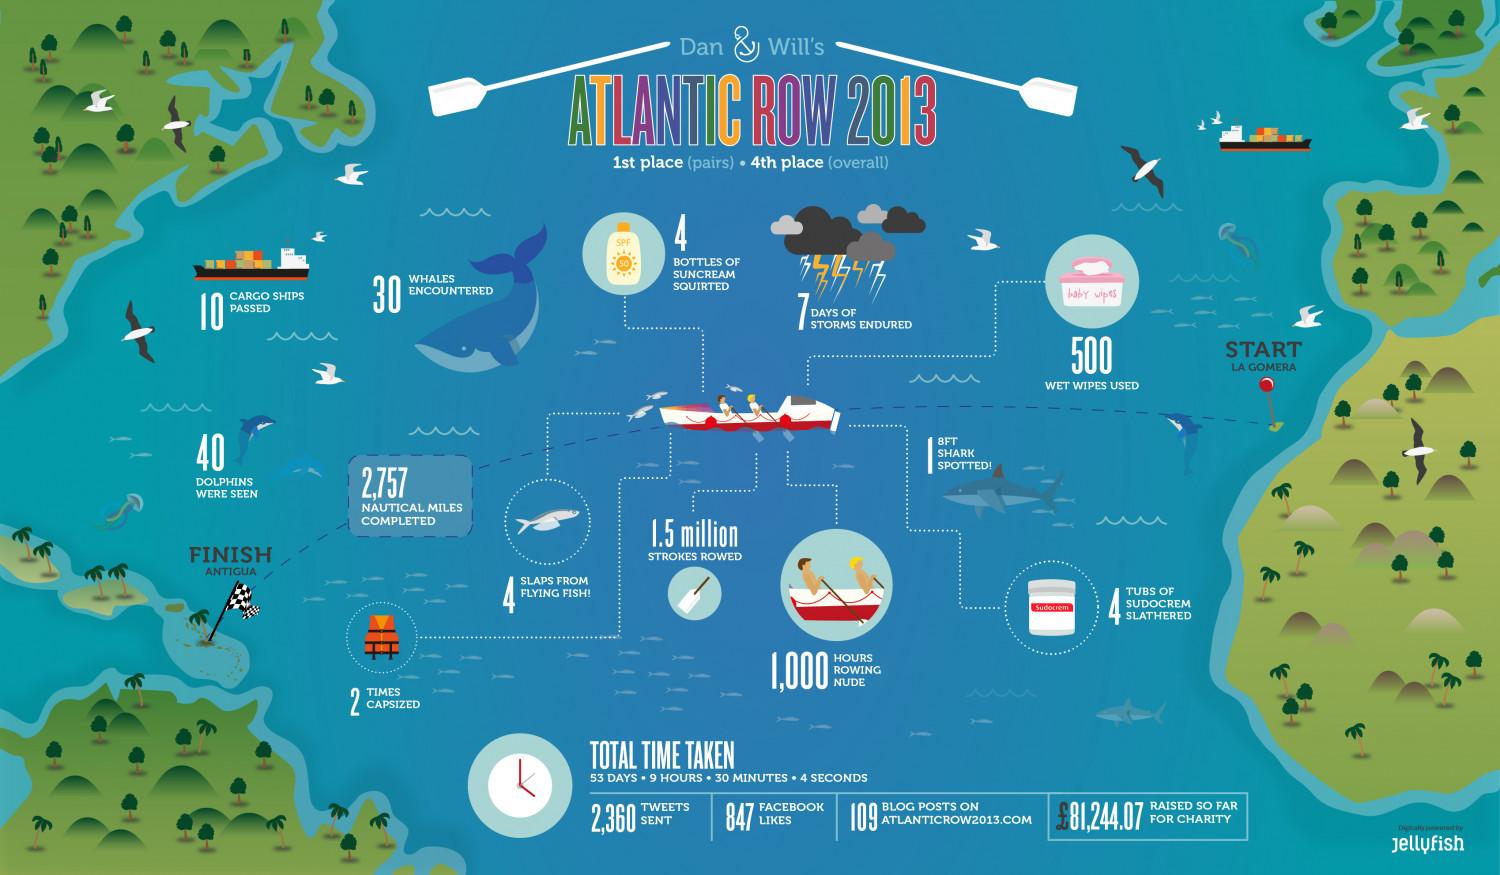 Atlantic Row 2013 Infographic